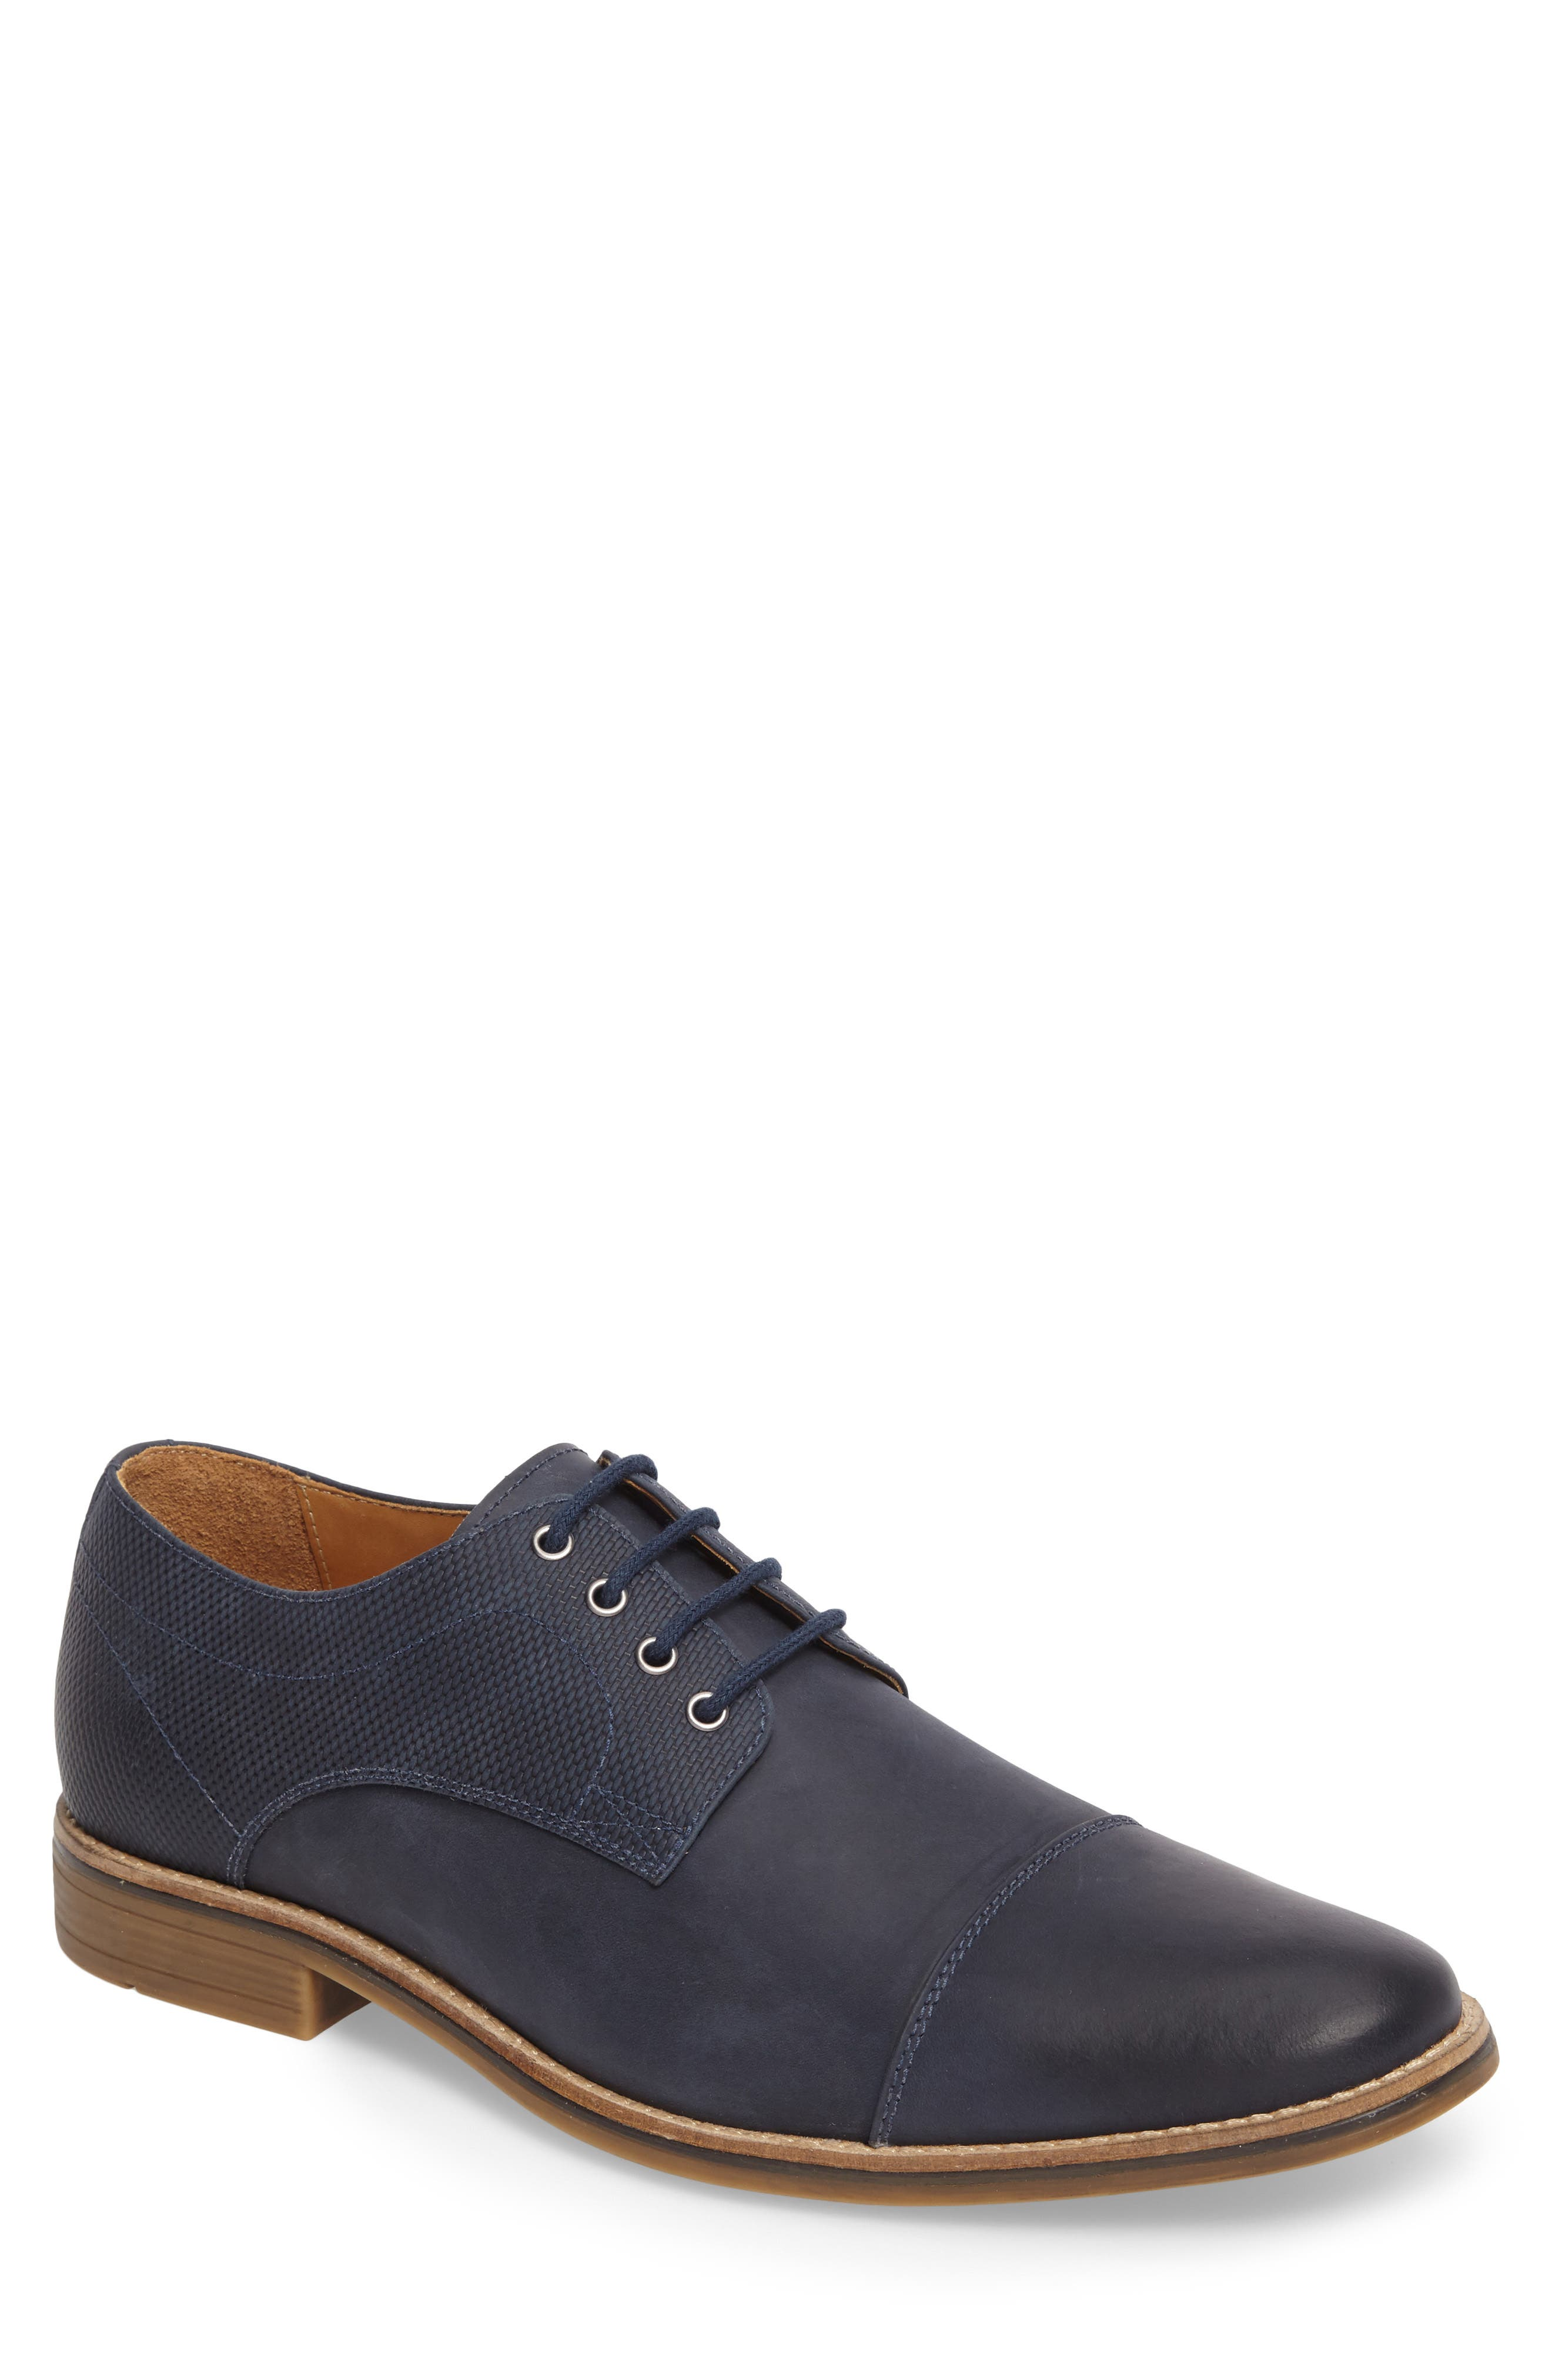 Goleta Cap Toe Derby,                         Main,                         color, Navy Leather